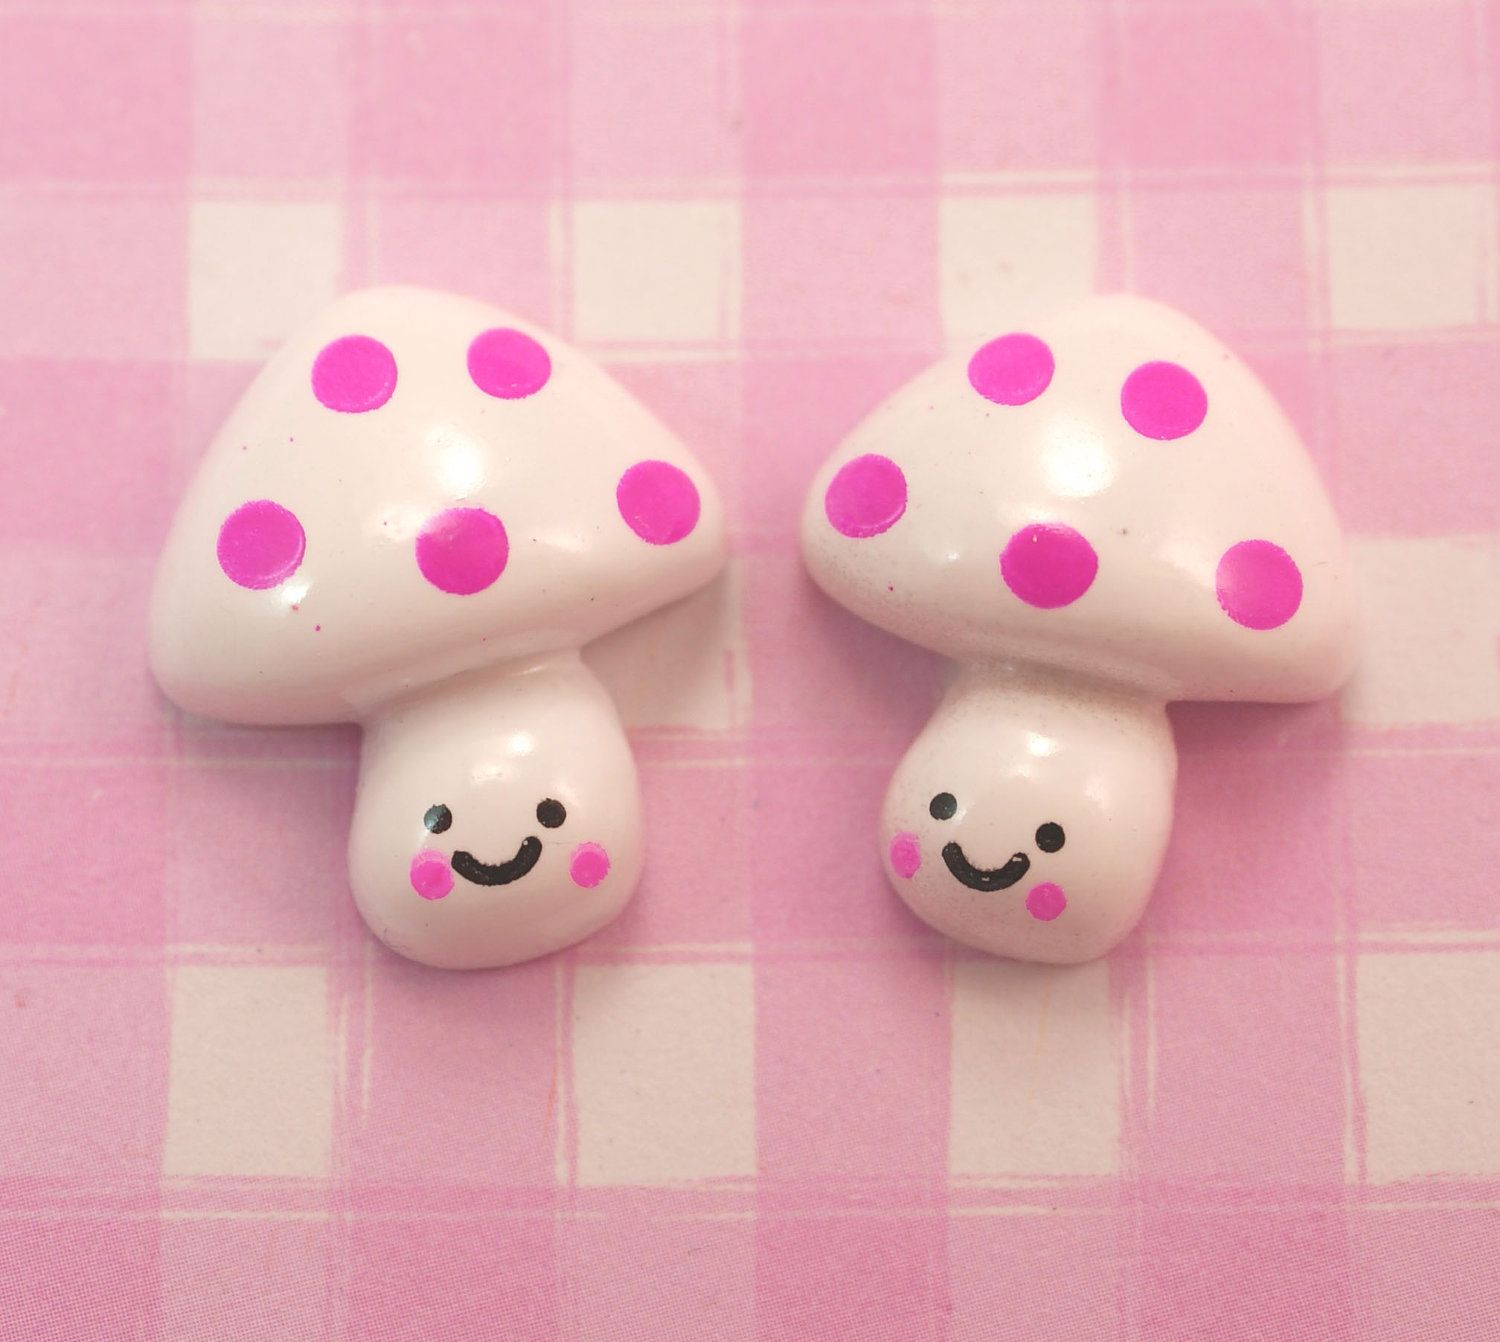 6 x Cute Spotty Mushroom Character Flat Back Resin Cabochon for Kawaii Crafts, Decoden etc - 20 x 18mm. £2.45, via Etsy.